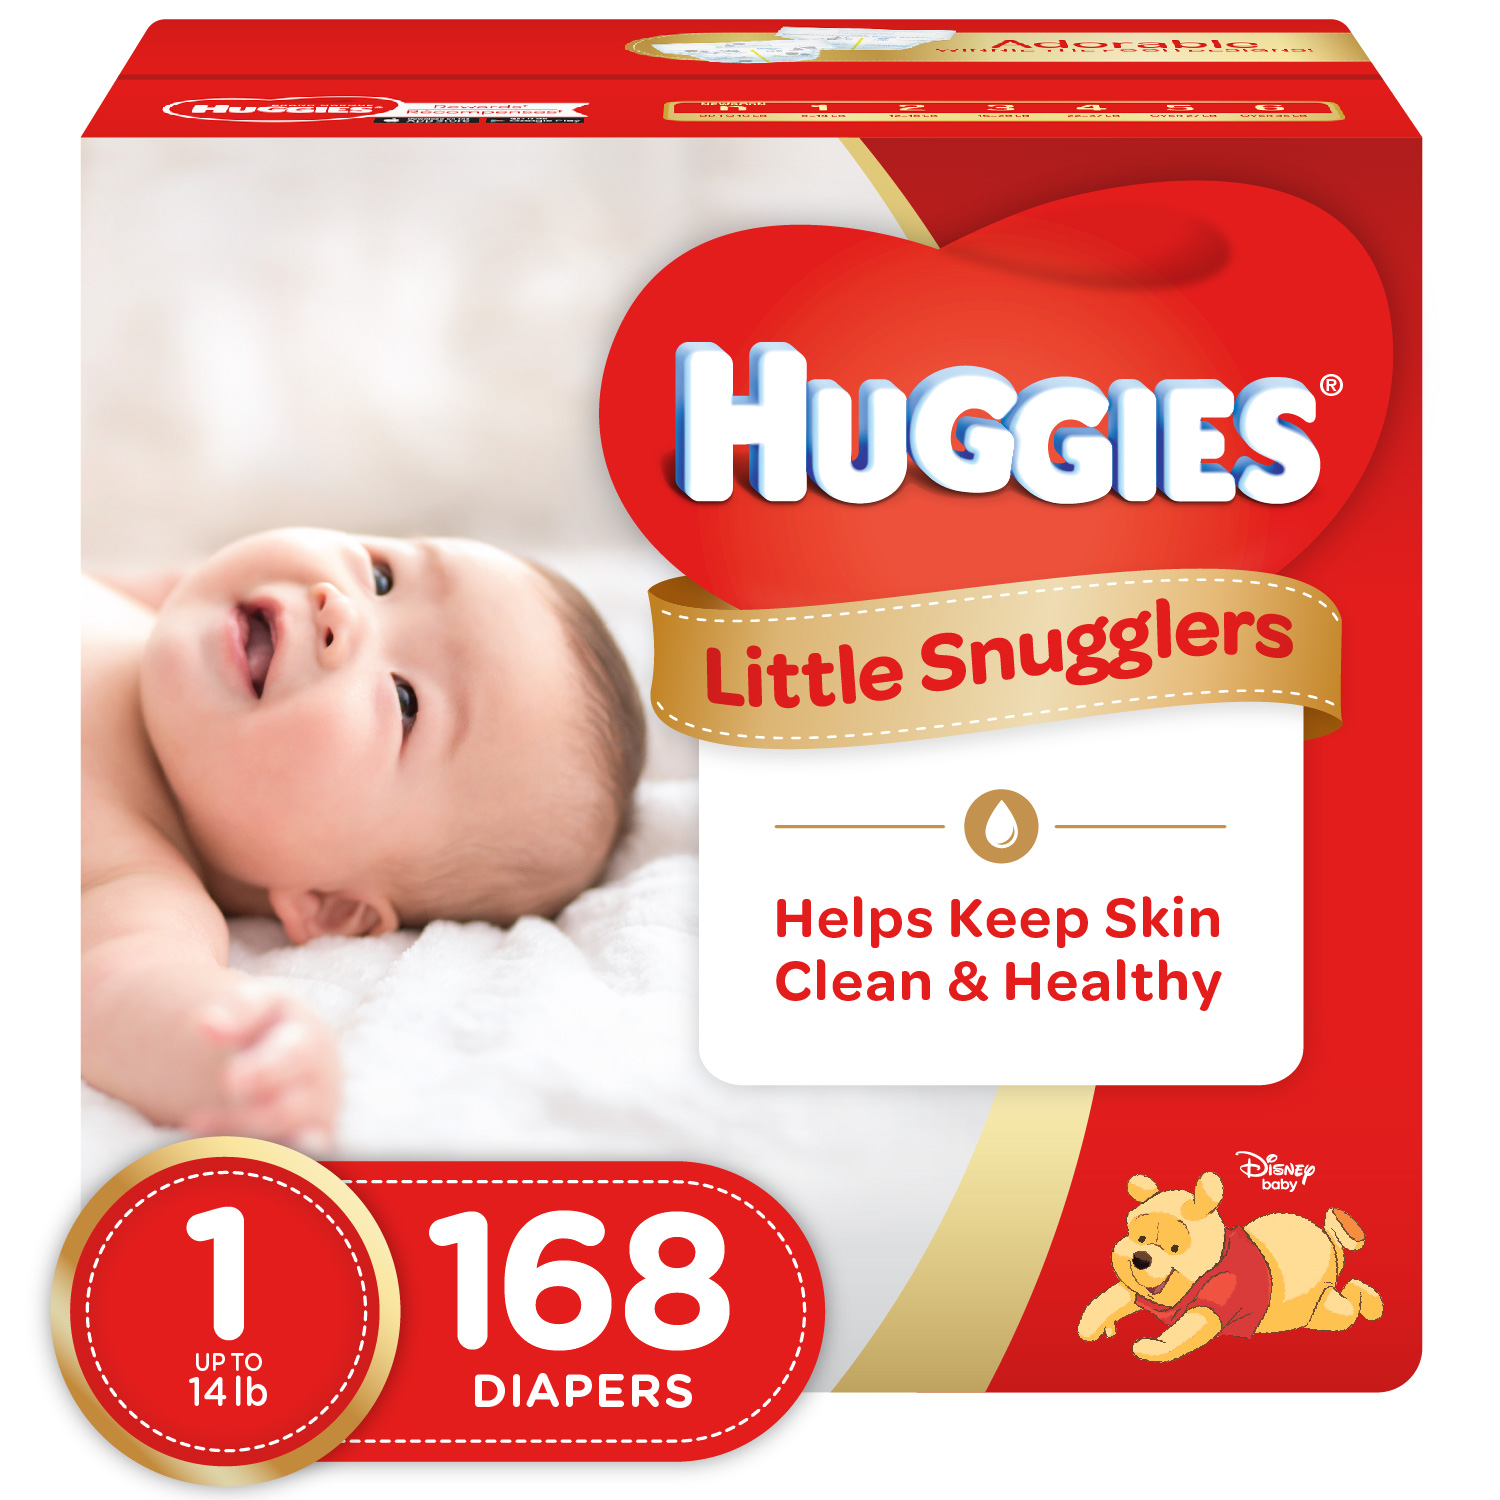 HUGGIES Little Snugglers Diapers Size 1, 168 Diapers